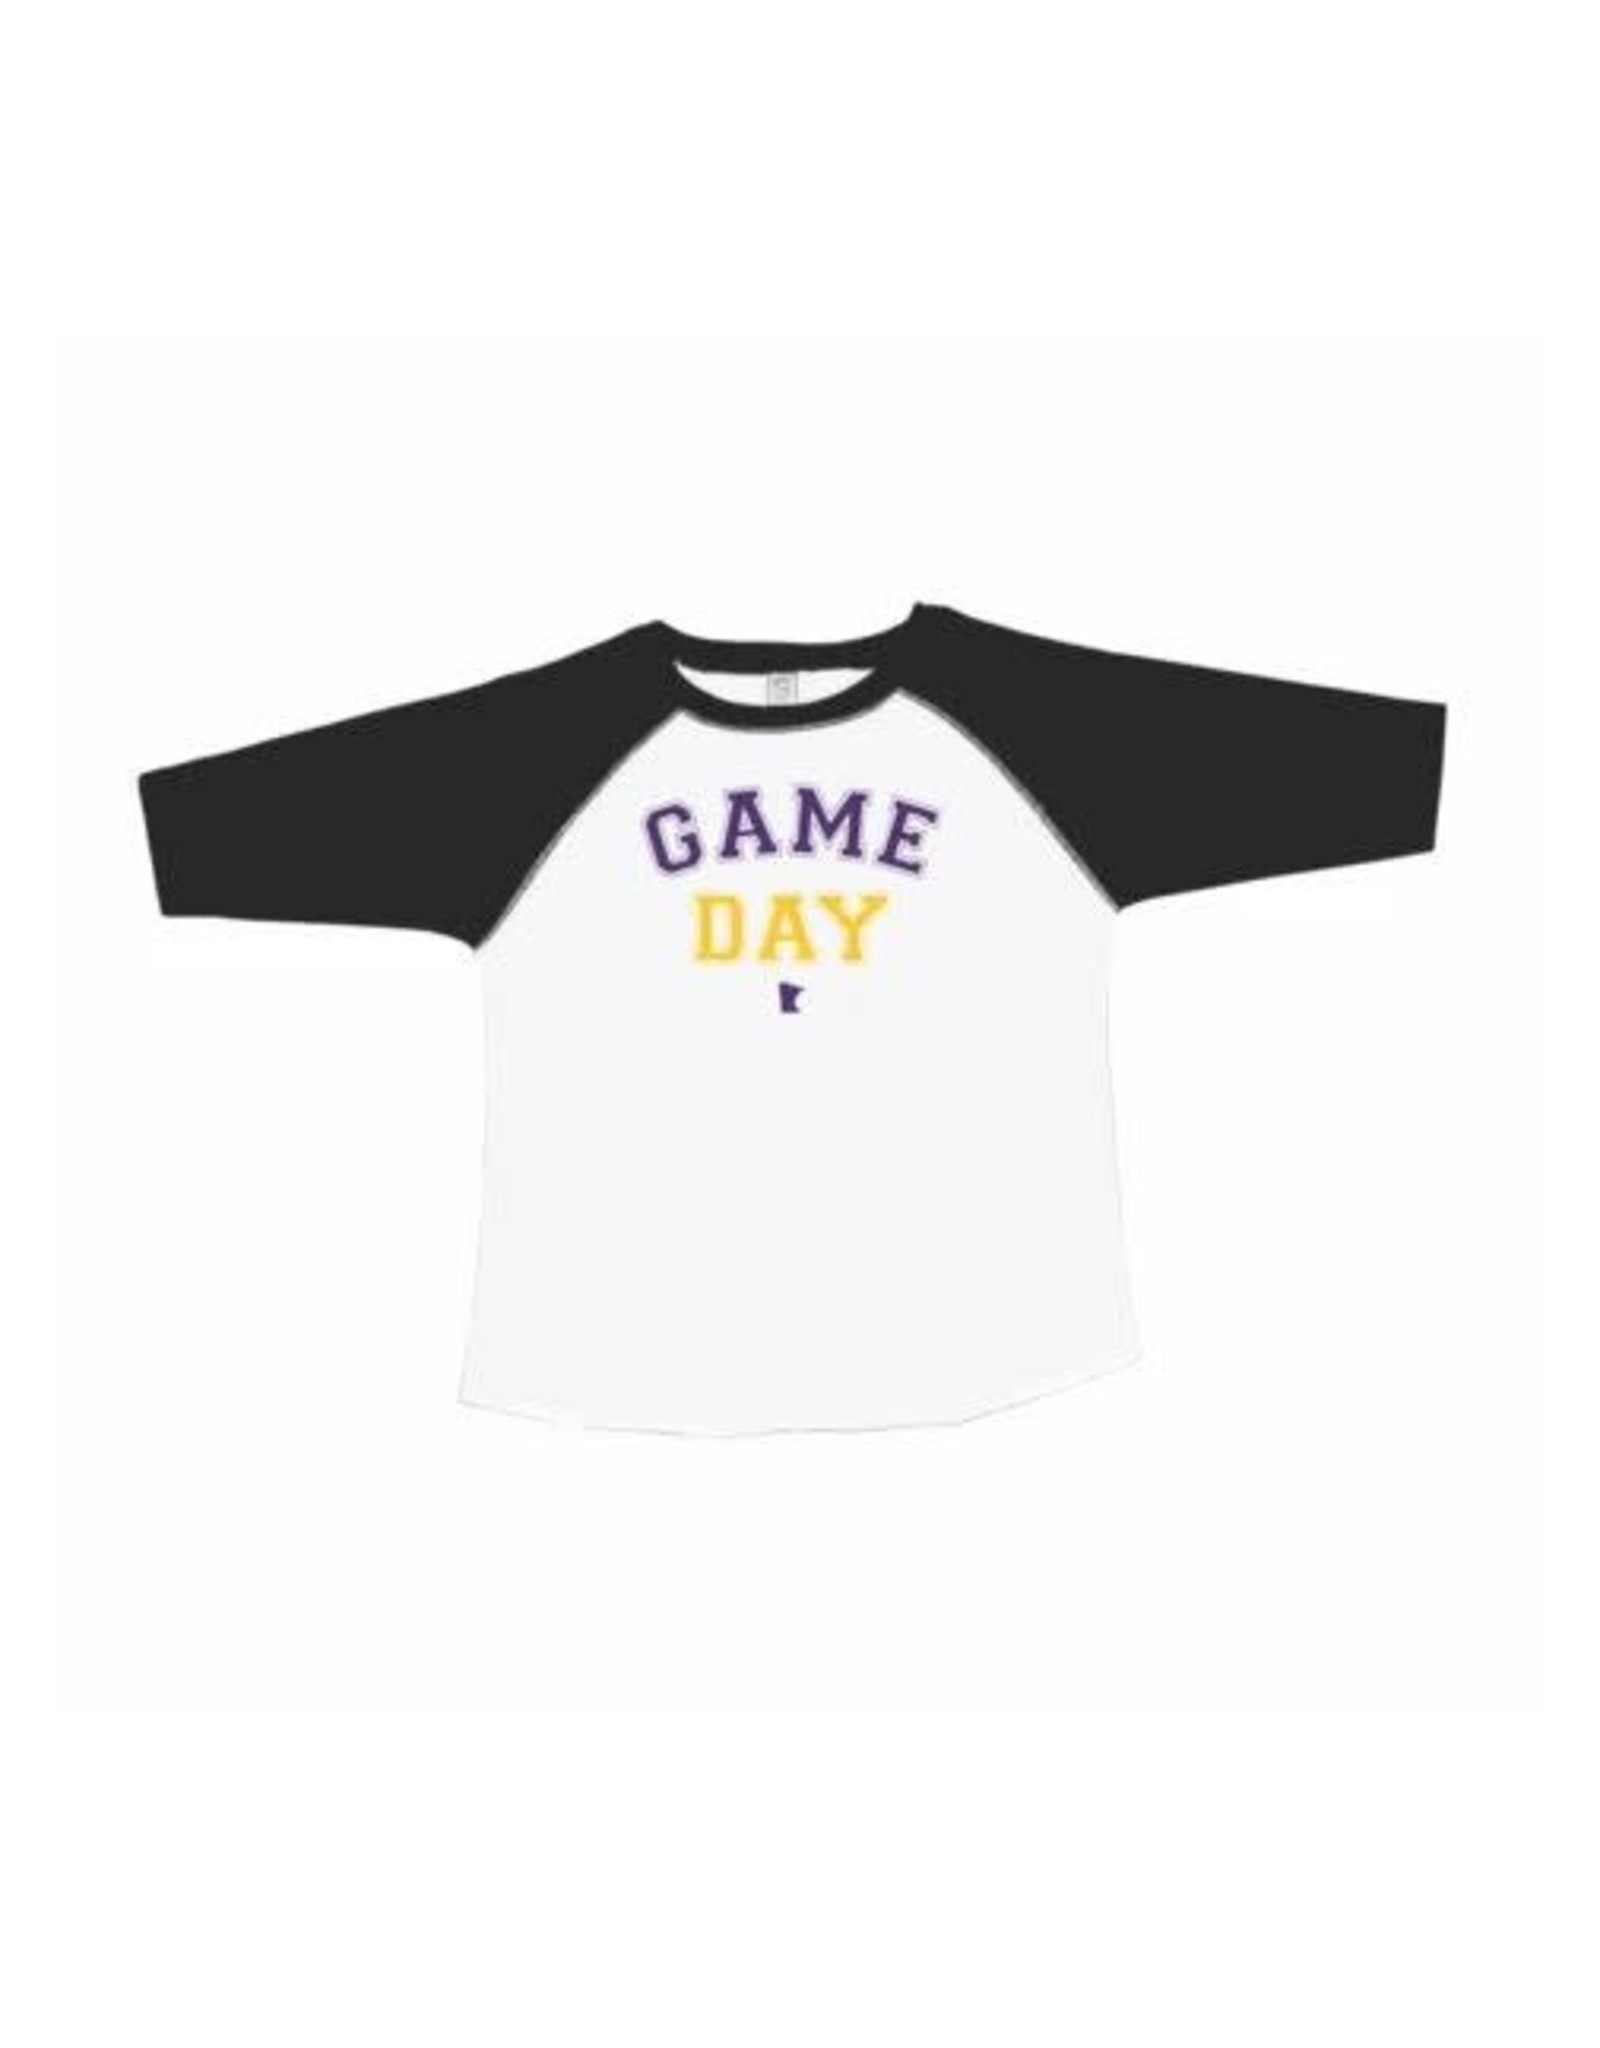 MINNESOTA GAME DAY TODDLER RAGLAN